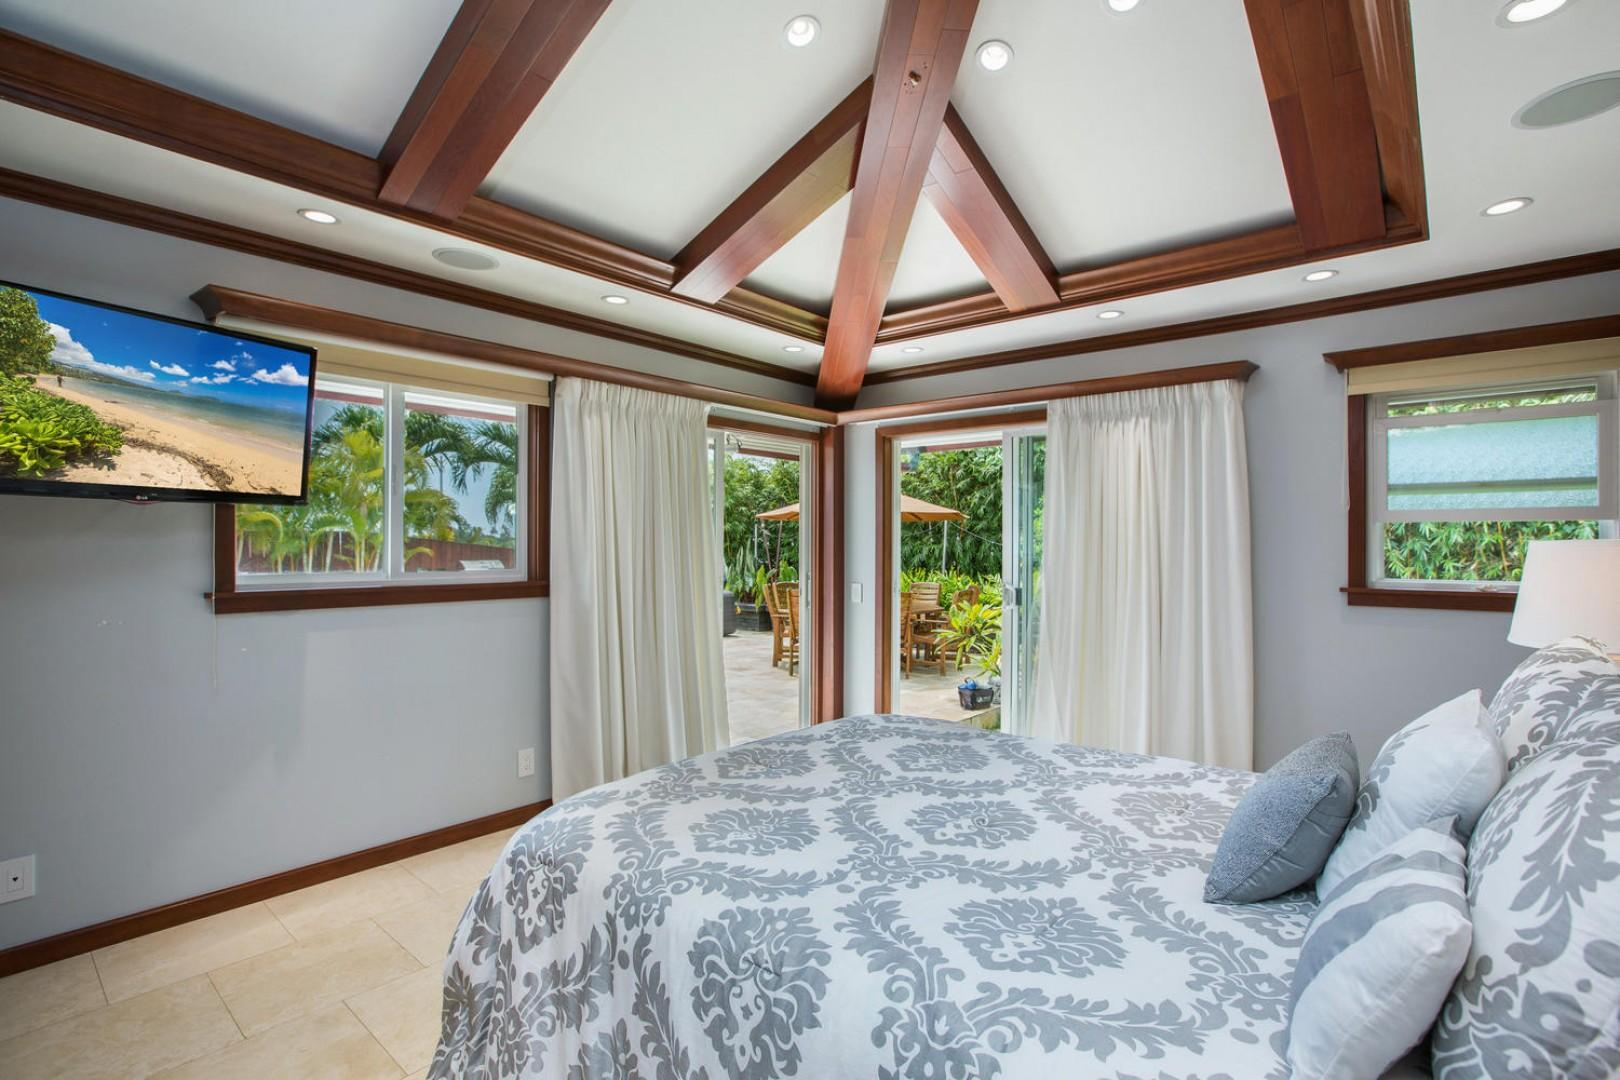 The first-floor master bedroom (not to be confused with the second-floor master!) has sliders to the pool deck and yoga lawn, a high-density television, and an en suite bathroom.